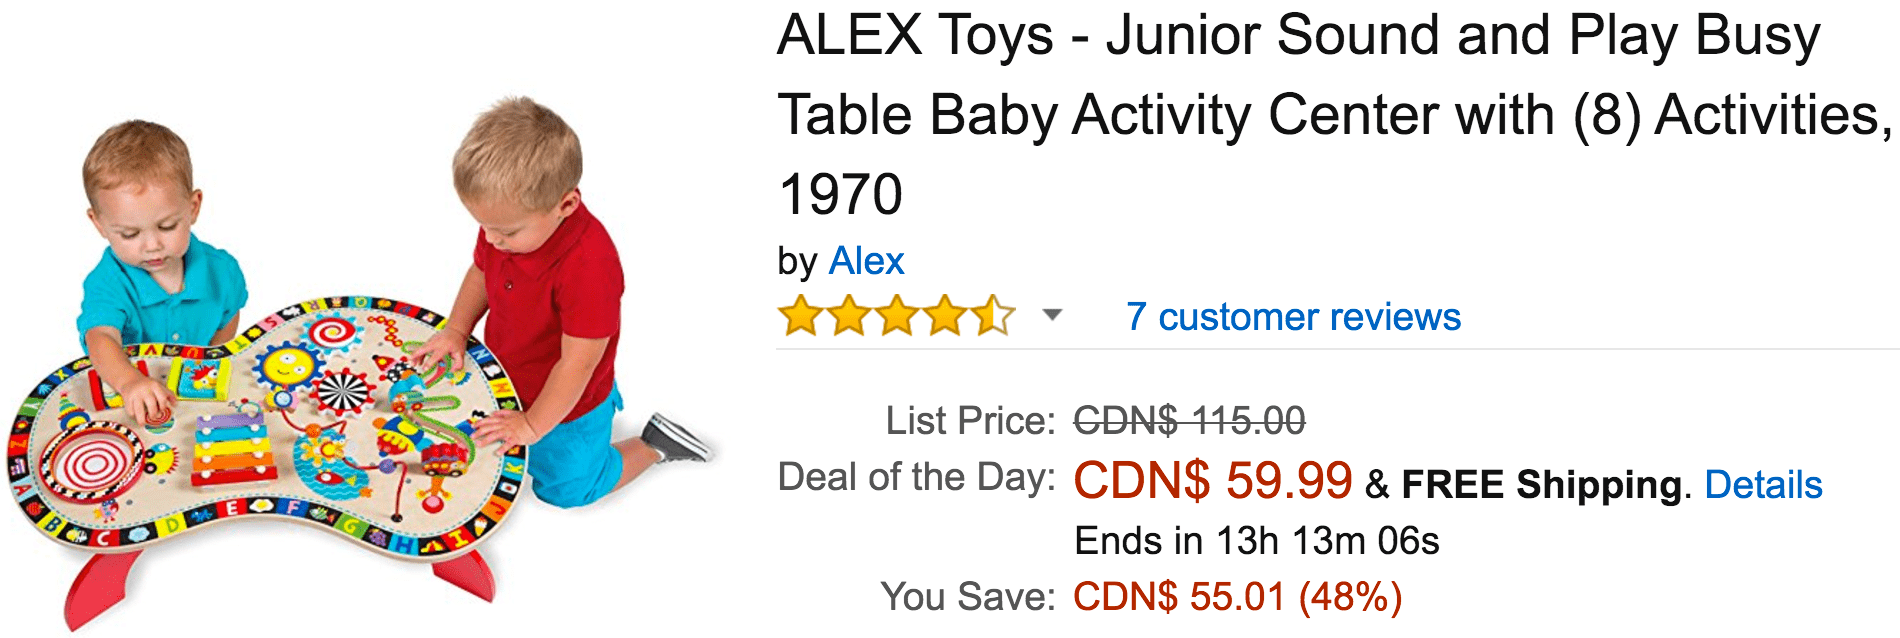 Amazon Canada Black Friday Deals: Save 48% On ALEX Toys – Junior Sound and Play Busy Table Baby Activity Center & More Offers